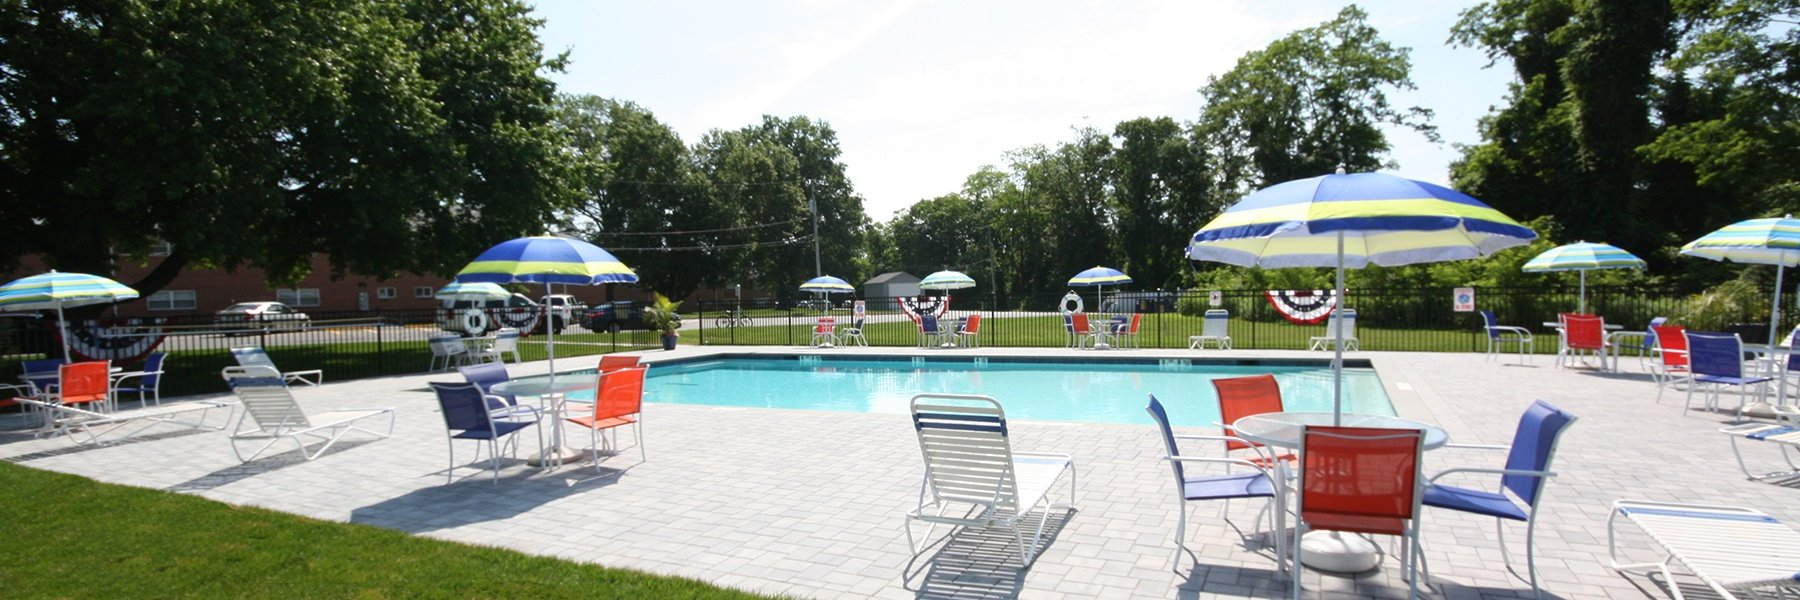 Atlantic Manor Apartments for Rent in Manasquan, NJ Swimming Pool